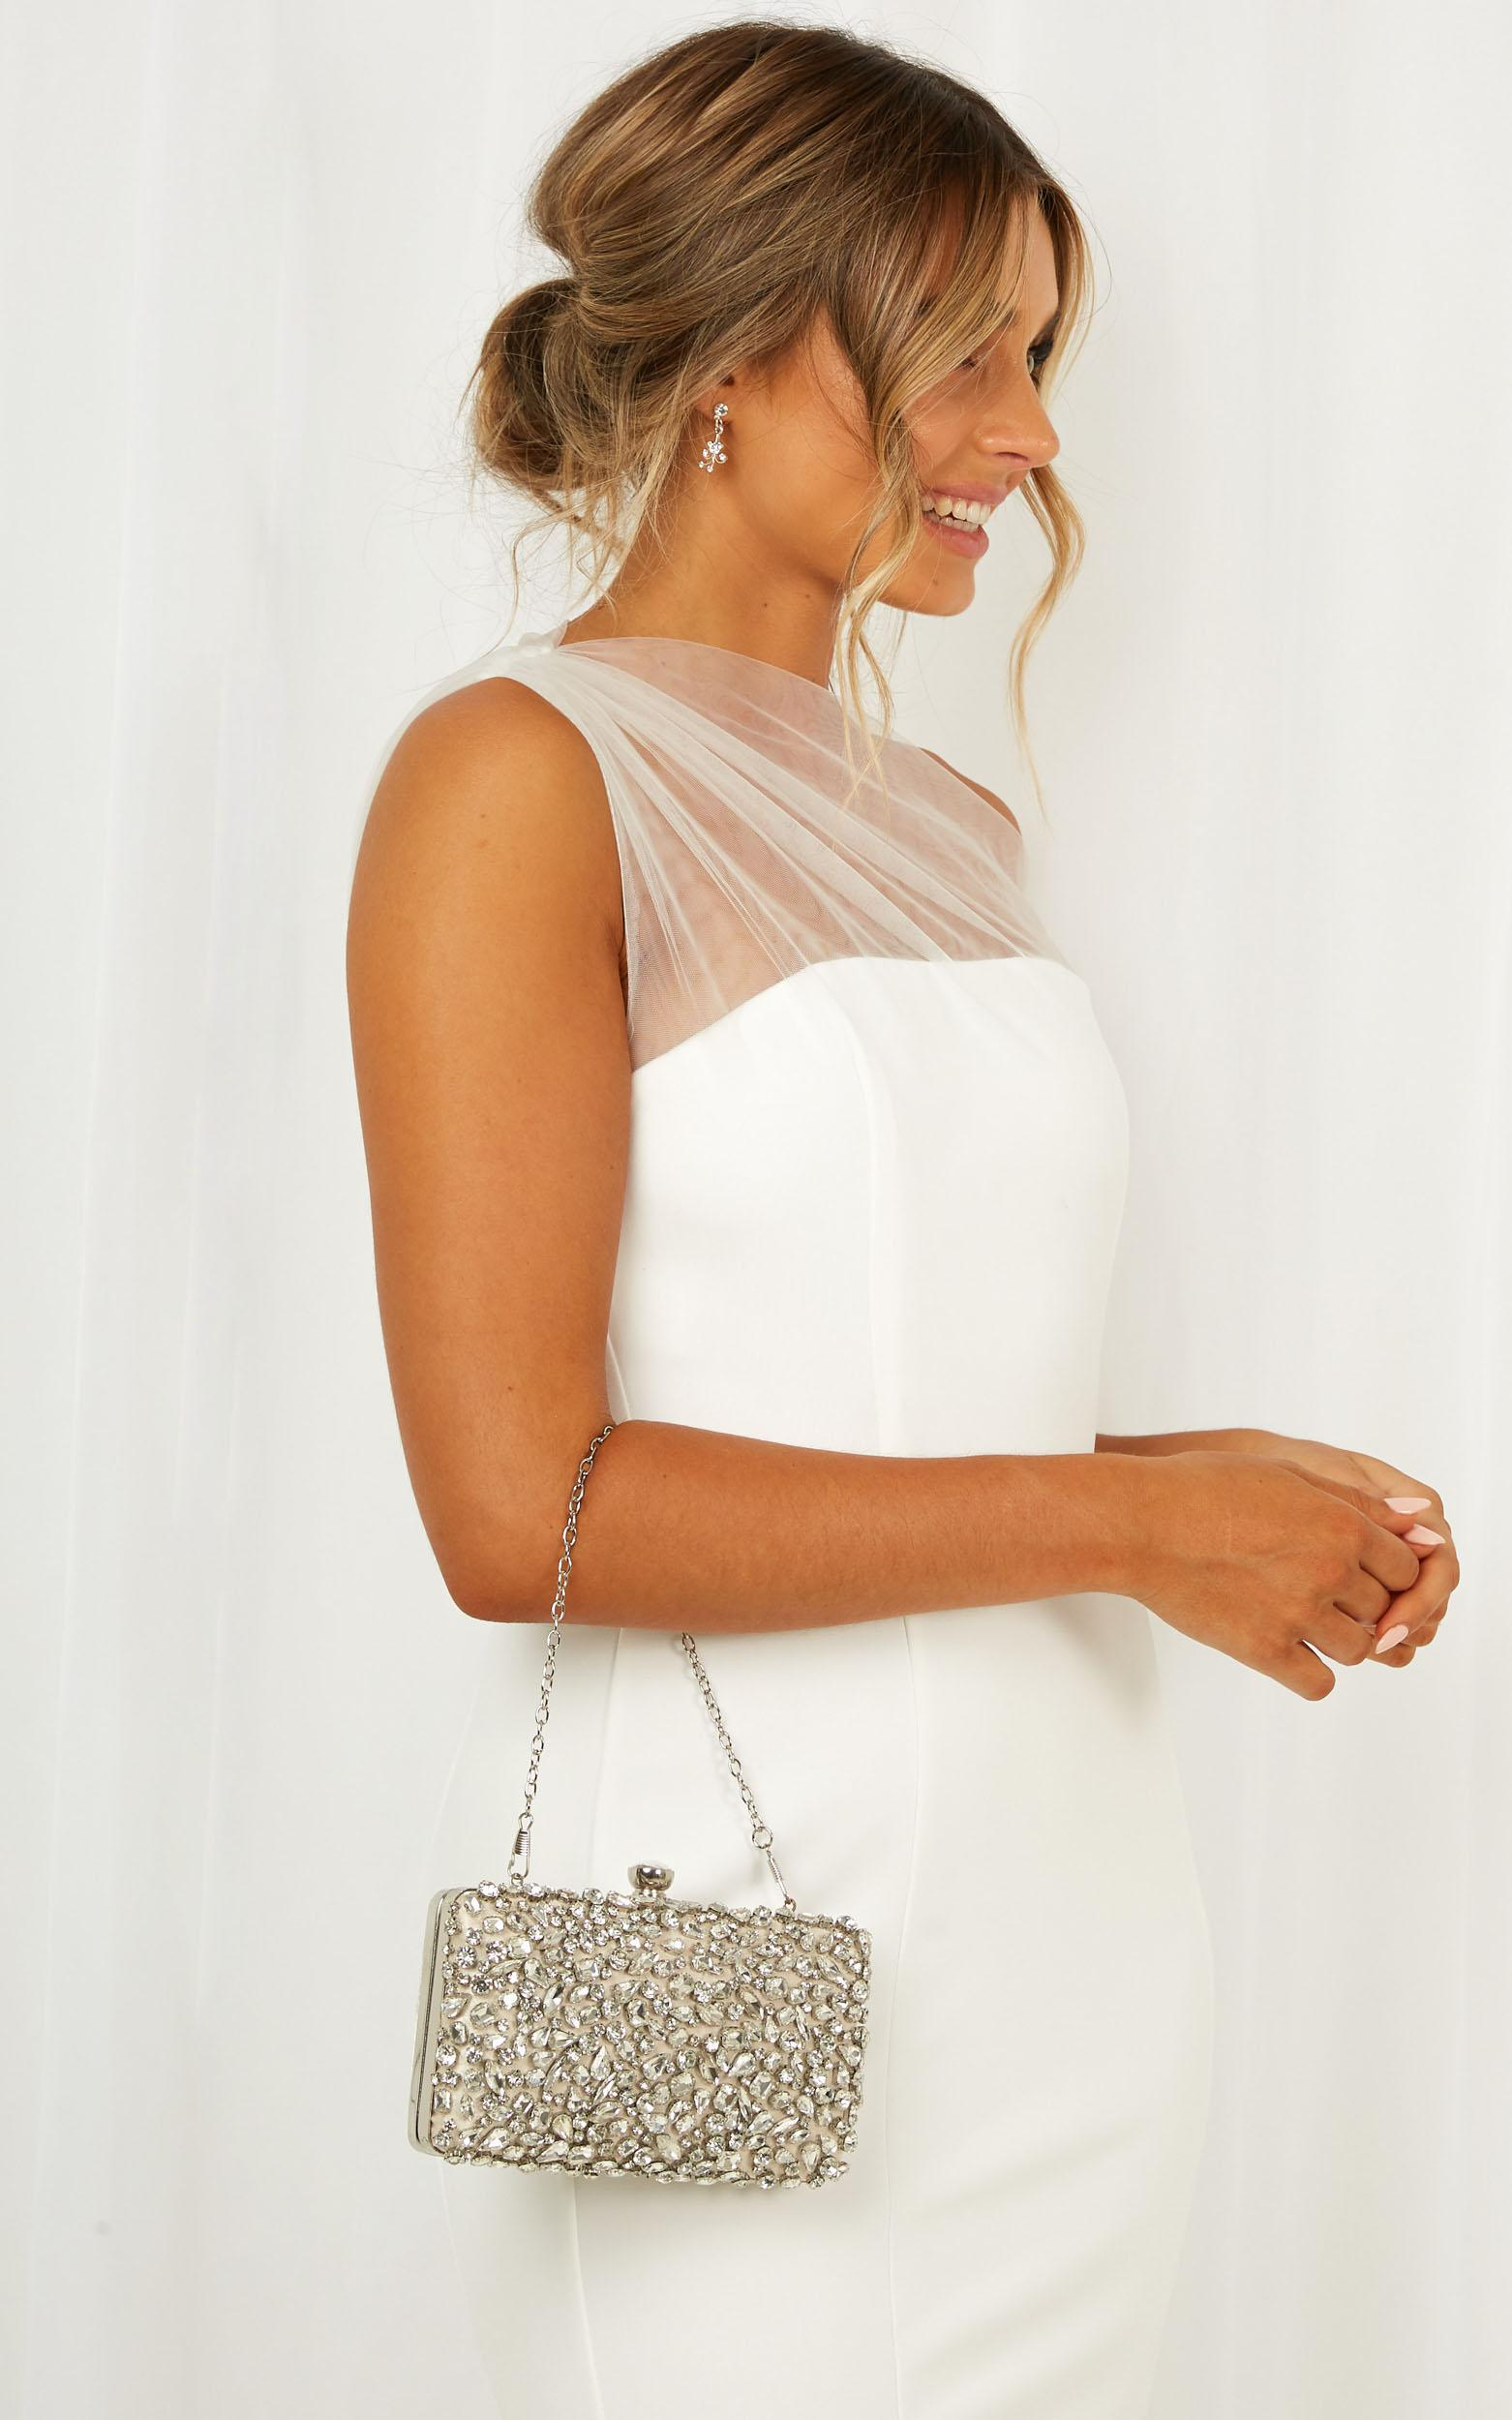 Never Ending Love Clutch In Silver, , hi-res image number null